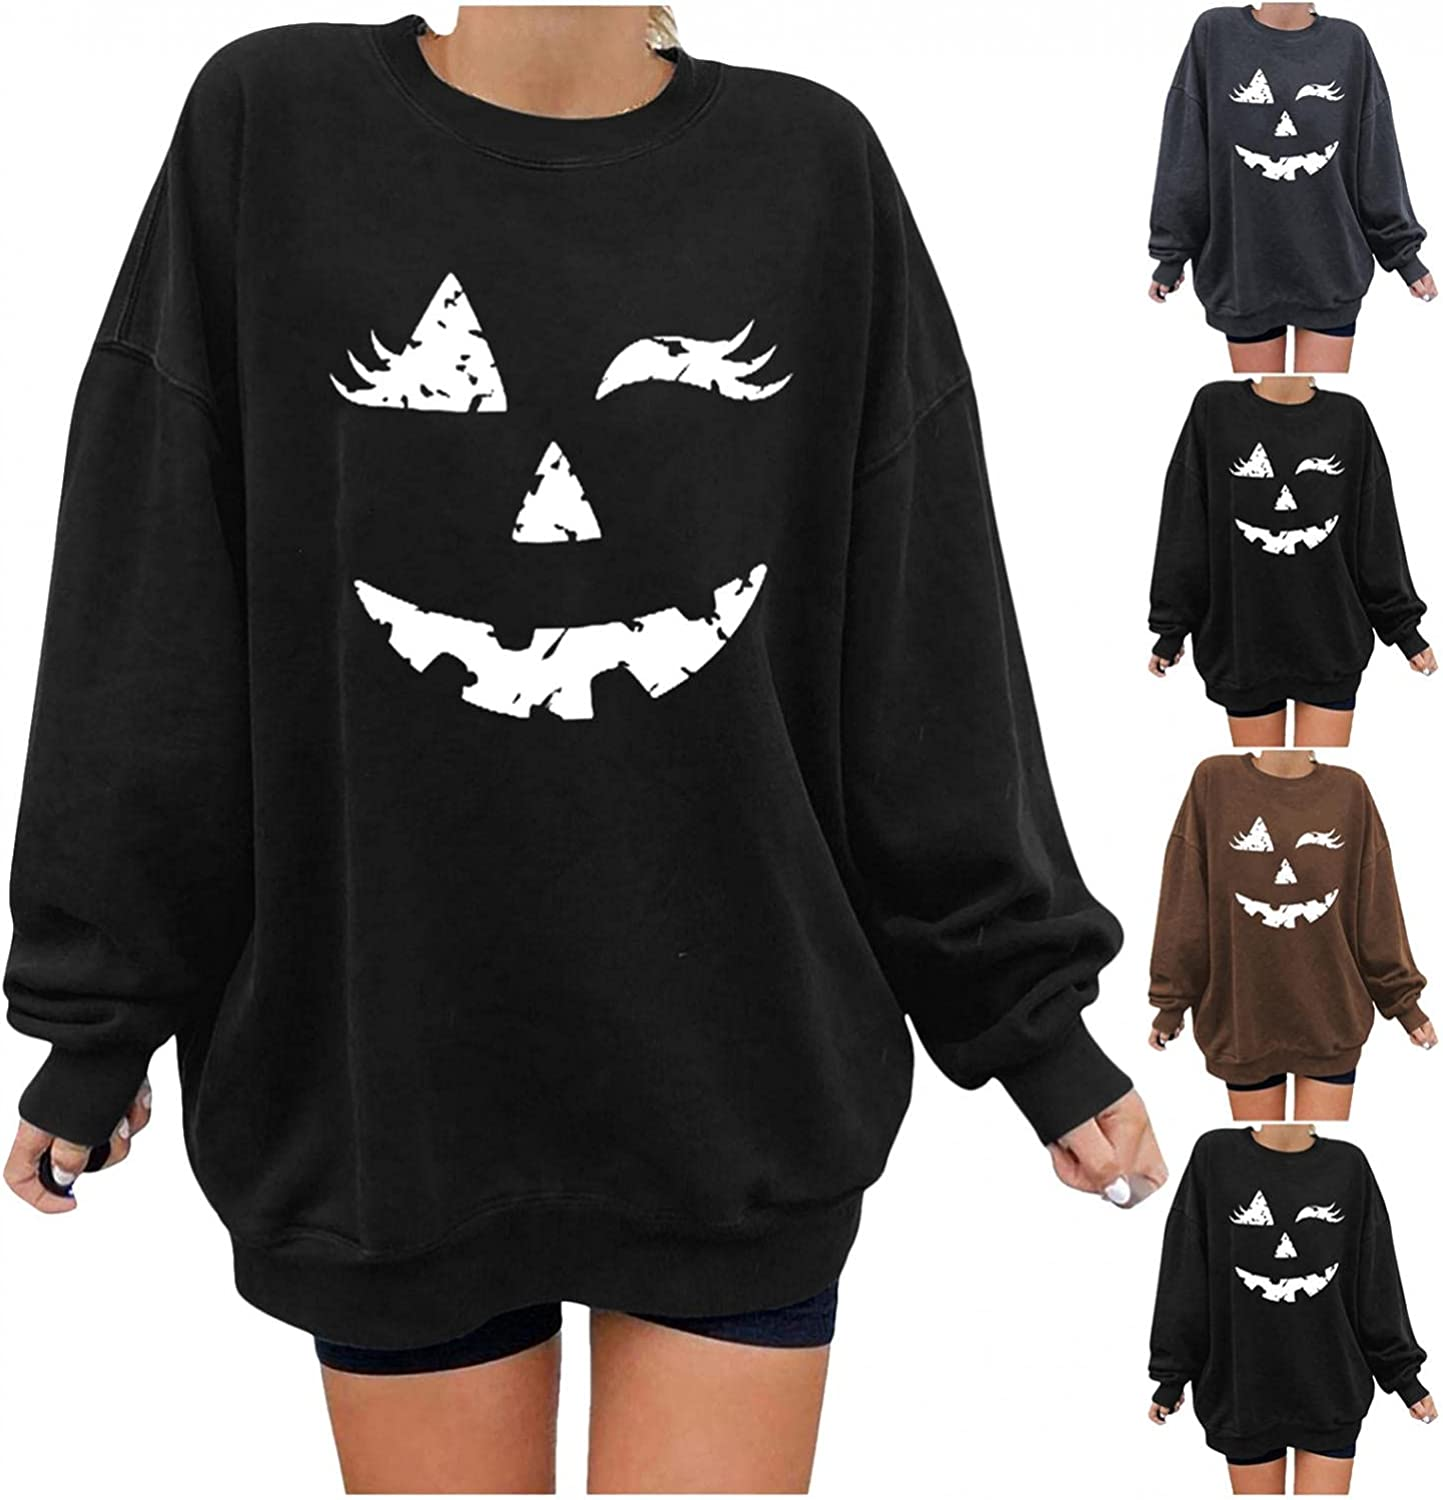 Women Limited time Los Angeles Mall cheap sale Halloween Pullover Tops Pumpkin Skeleton Casual Pl Printed